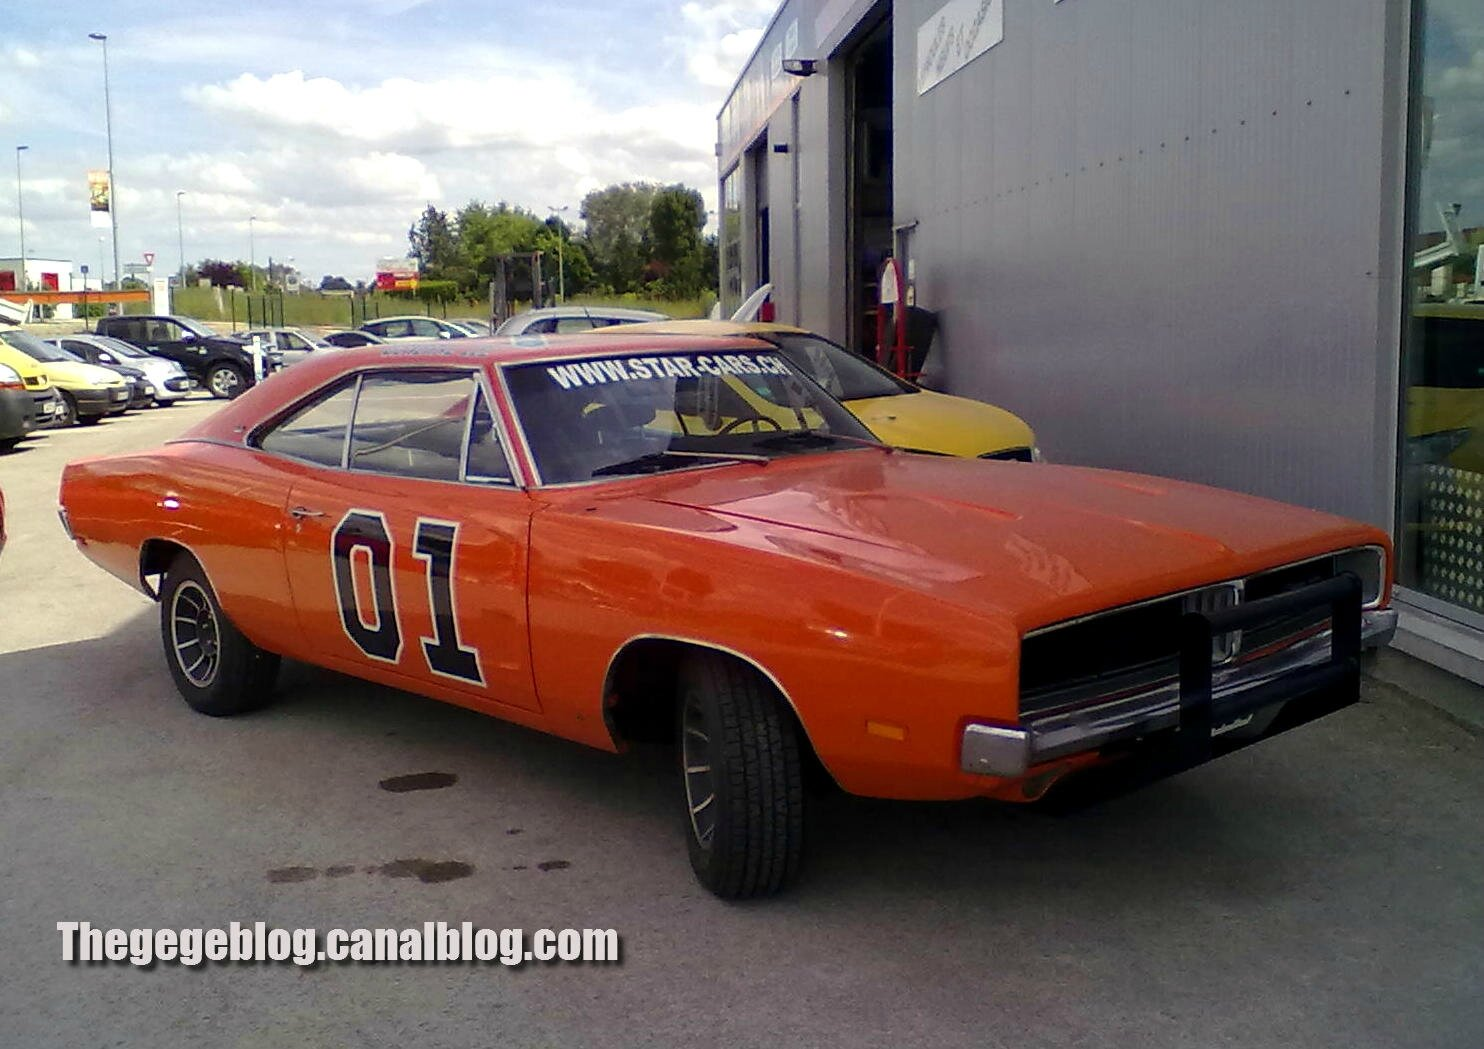 Dodge charger coupé special édition de 1969 general lee (Brienne le chateau) 01